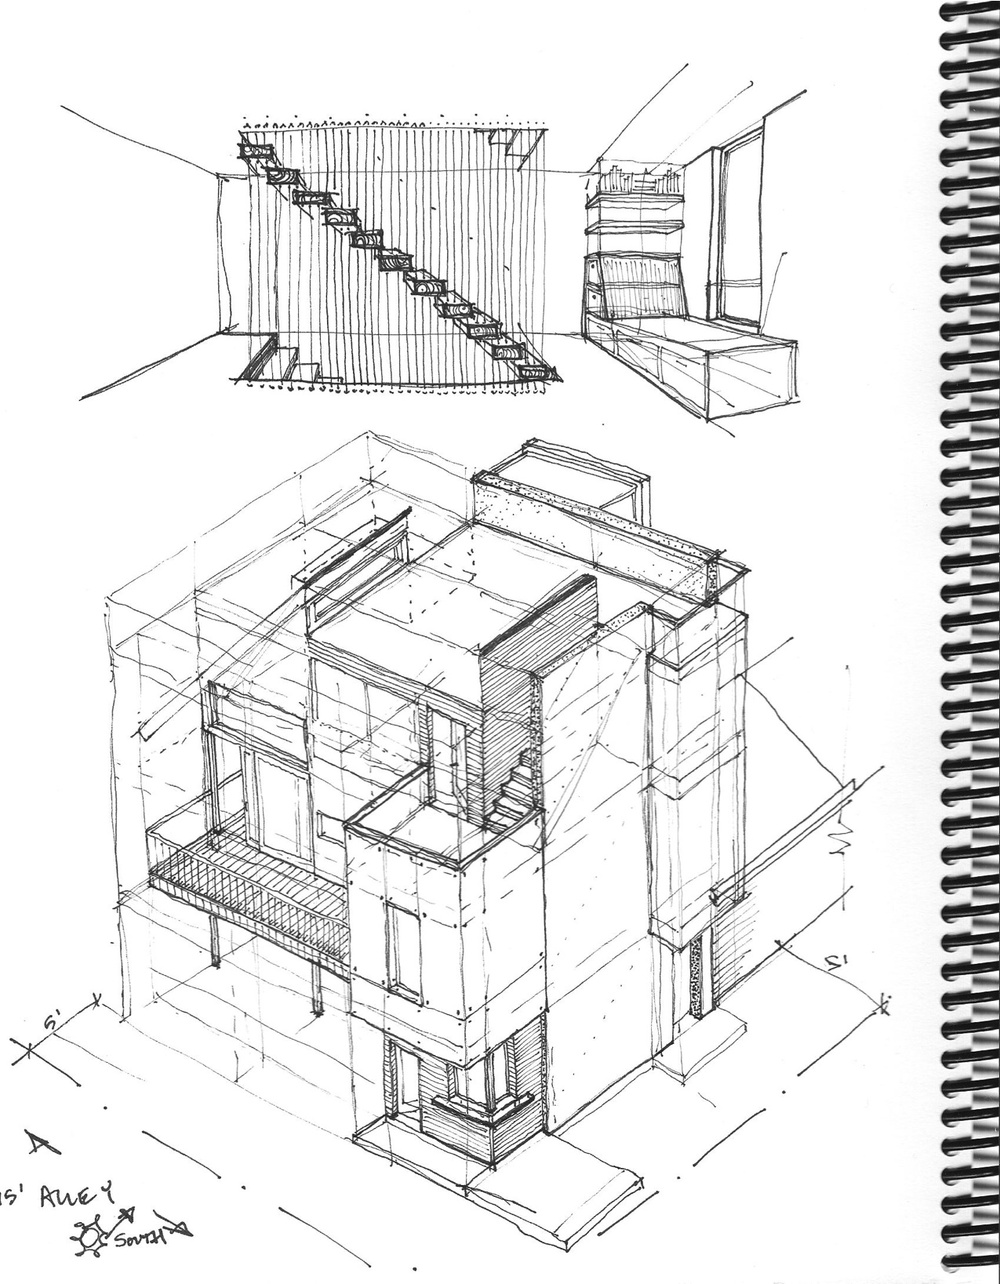 stair+exterior perspective.jpg